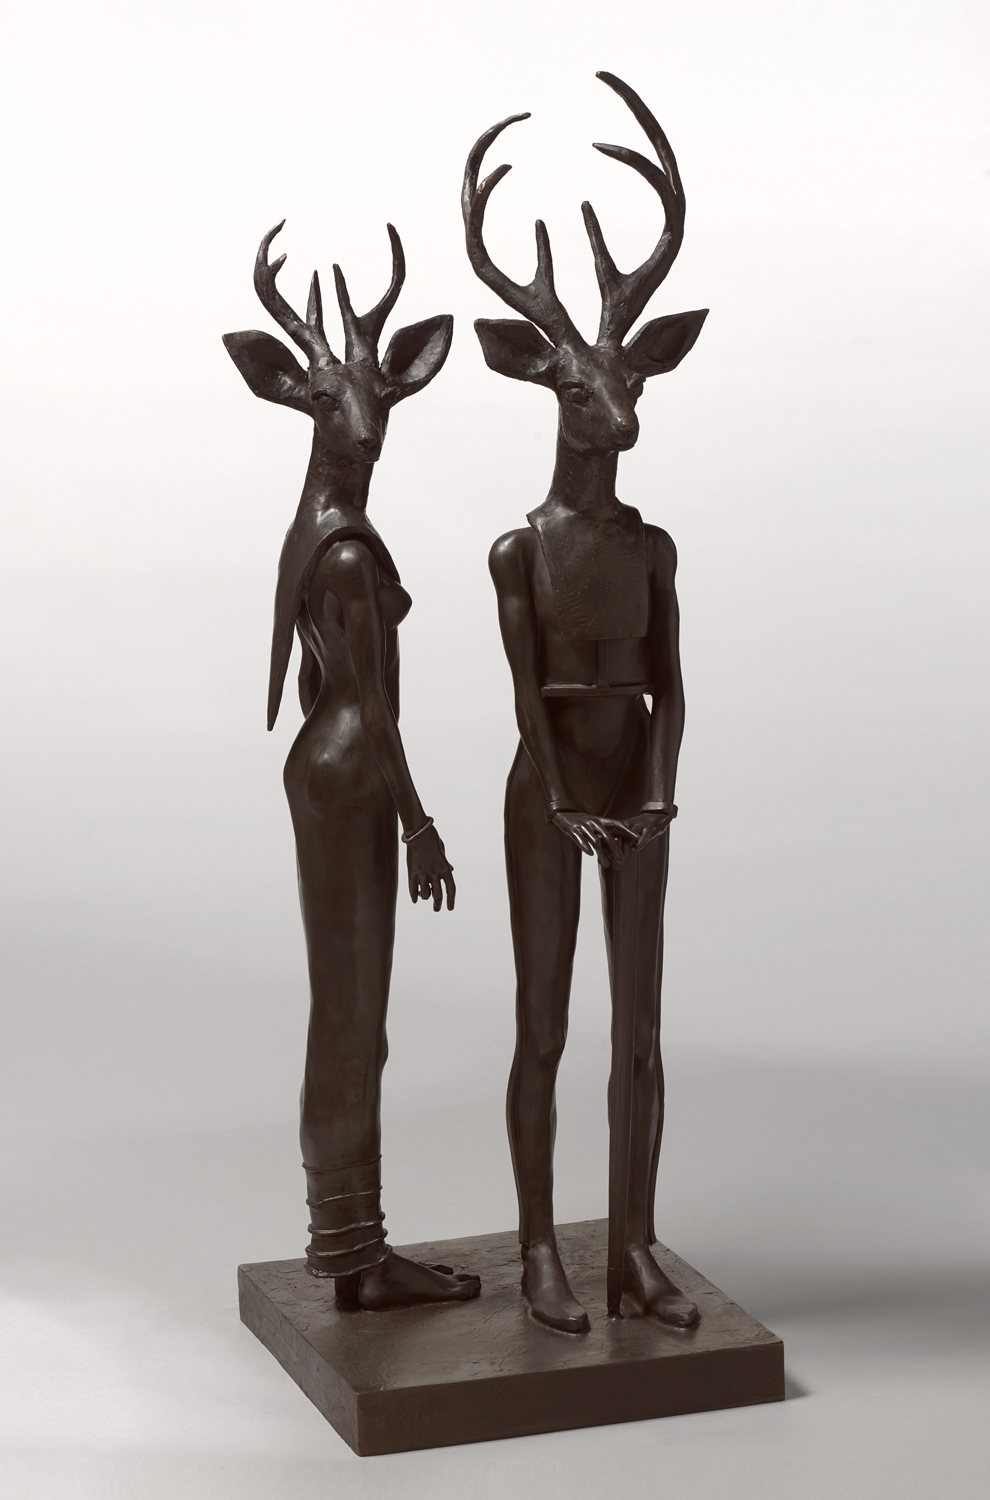 Venados , 2019  bronze 41 x 14 x 14 inches; 104.1 x 35.6 x 35.6 centimeters  $30,000